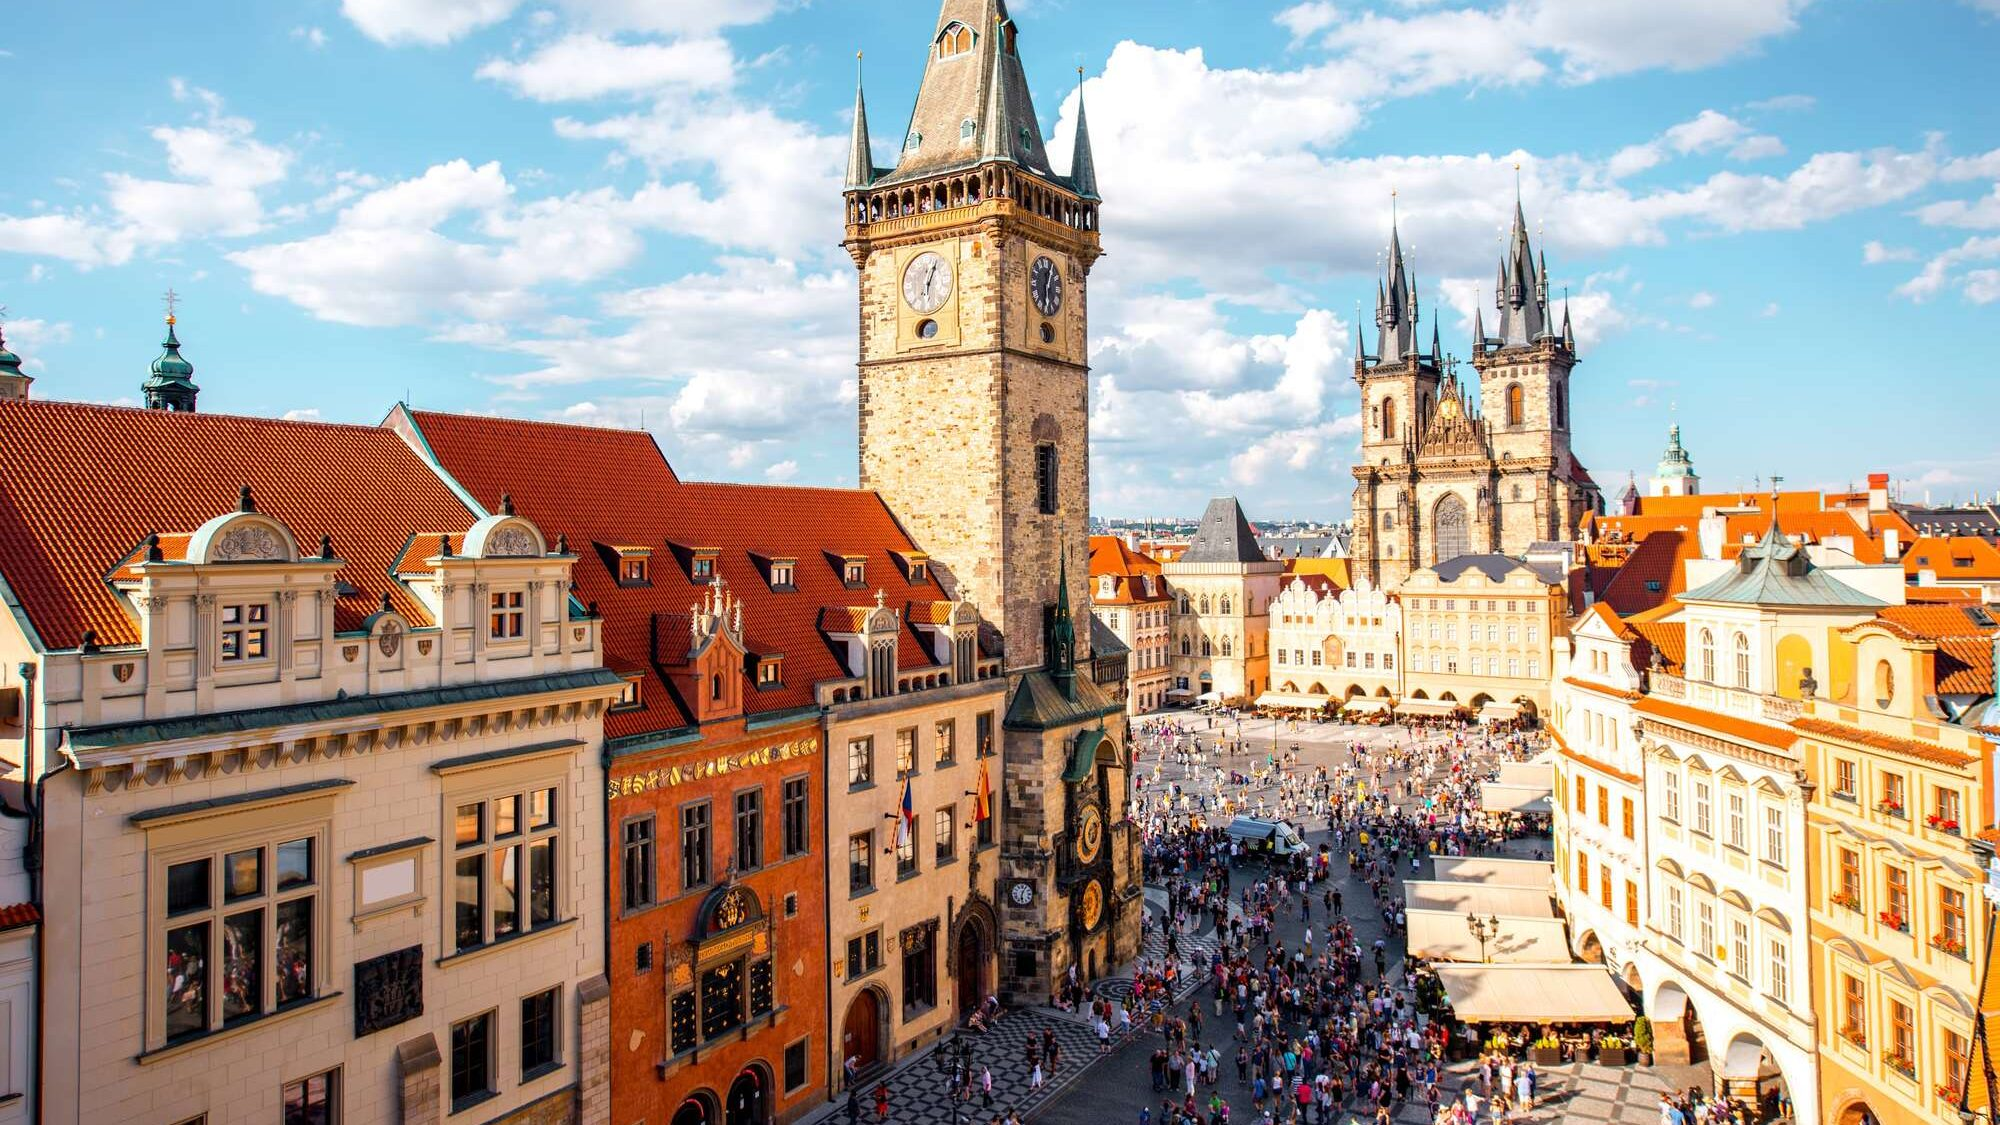 12th International festival of choirs and orchestras in Prague (Czech Republic)